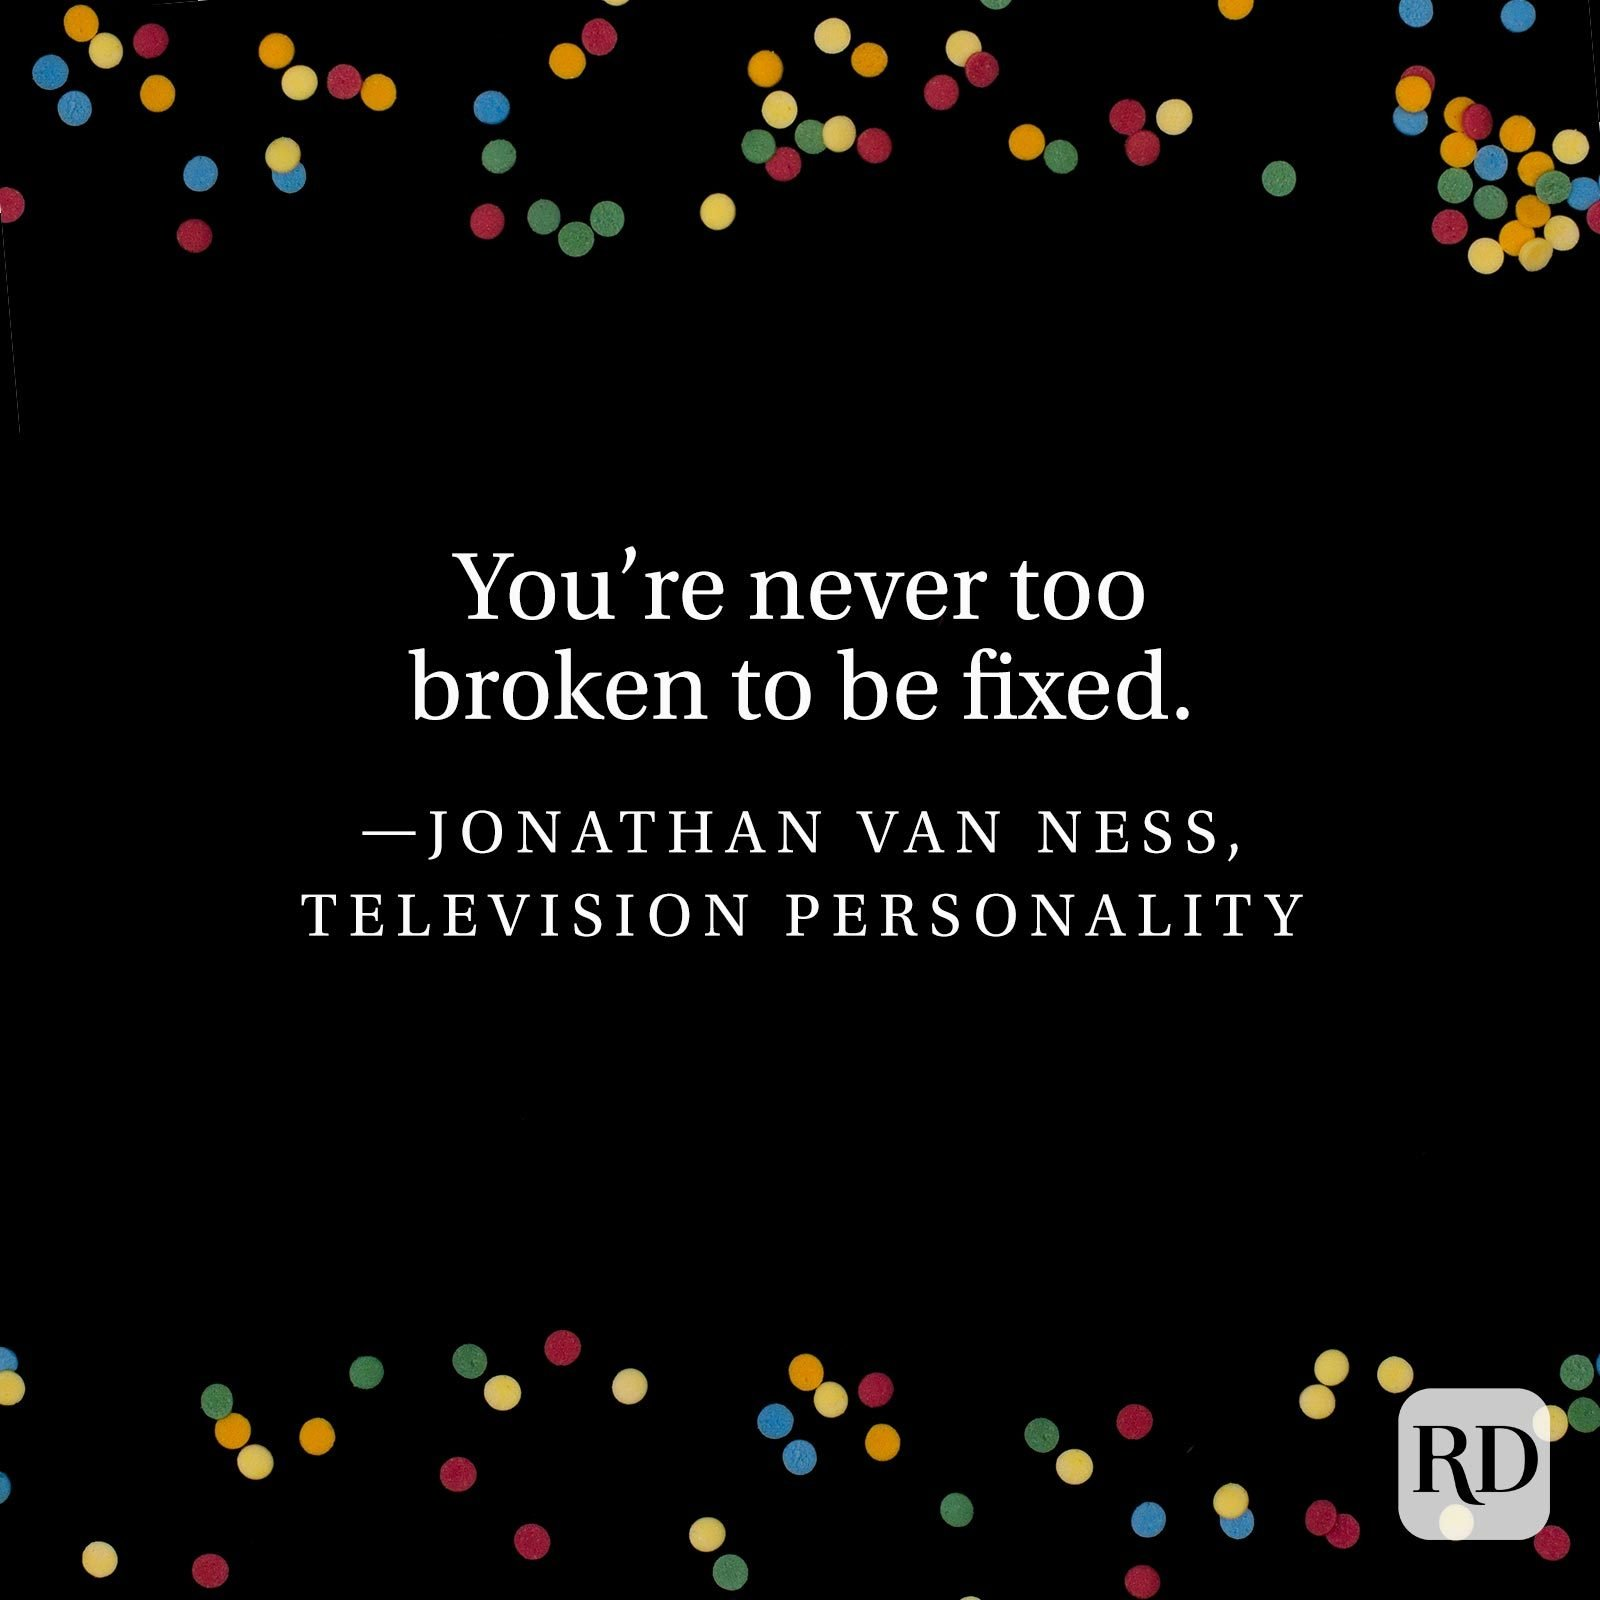 """You're never too broken to be fixed."" —Jonathan Van Ness, television personality"